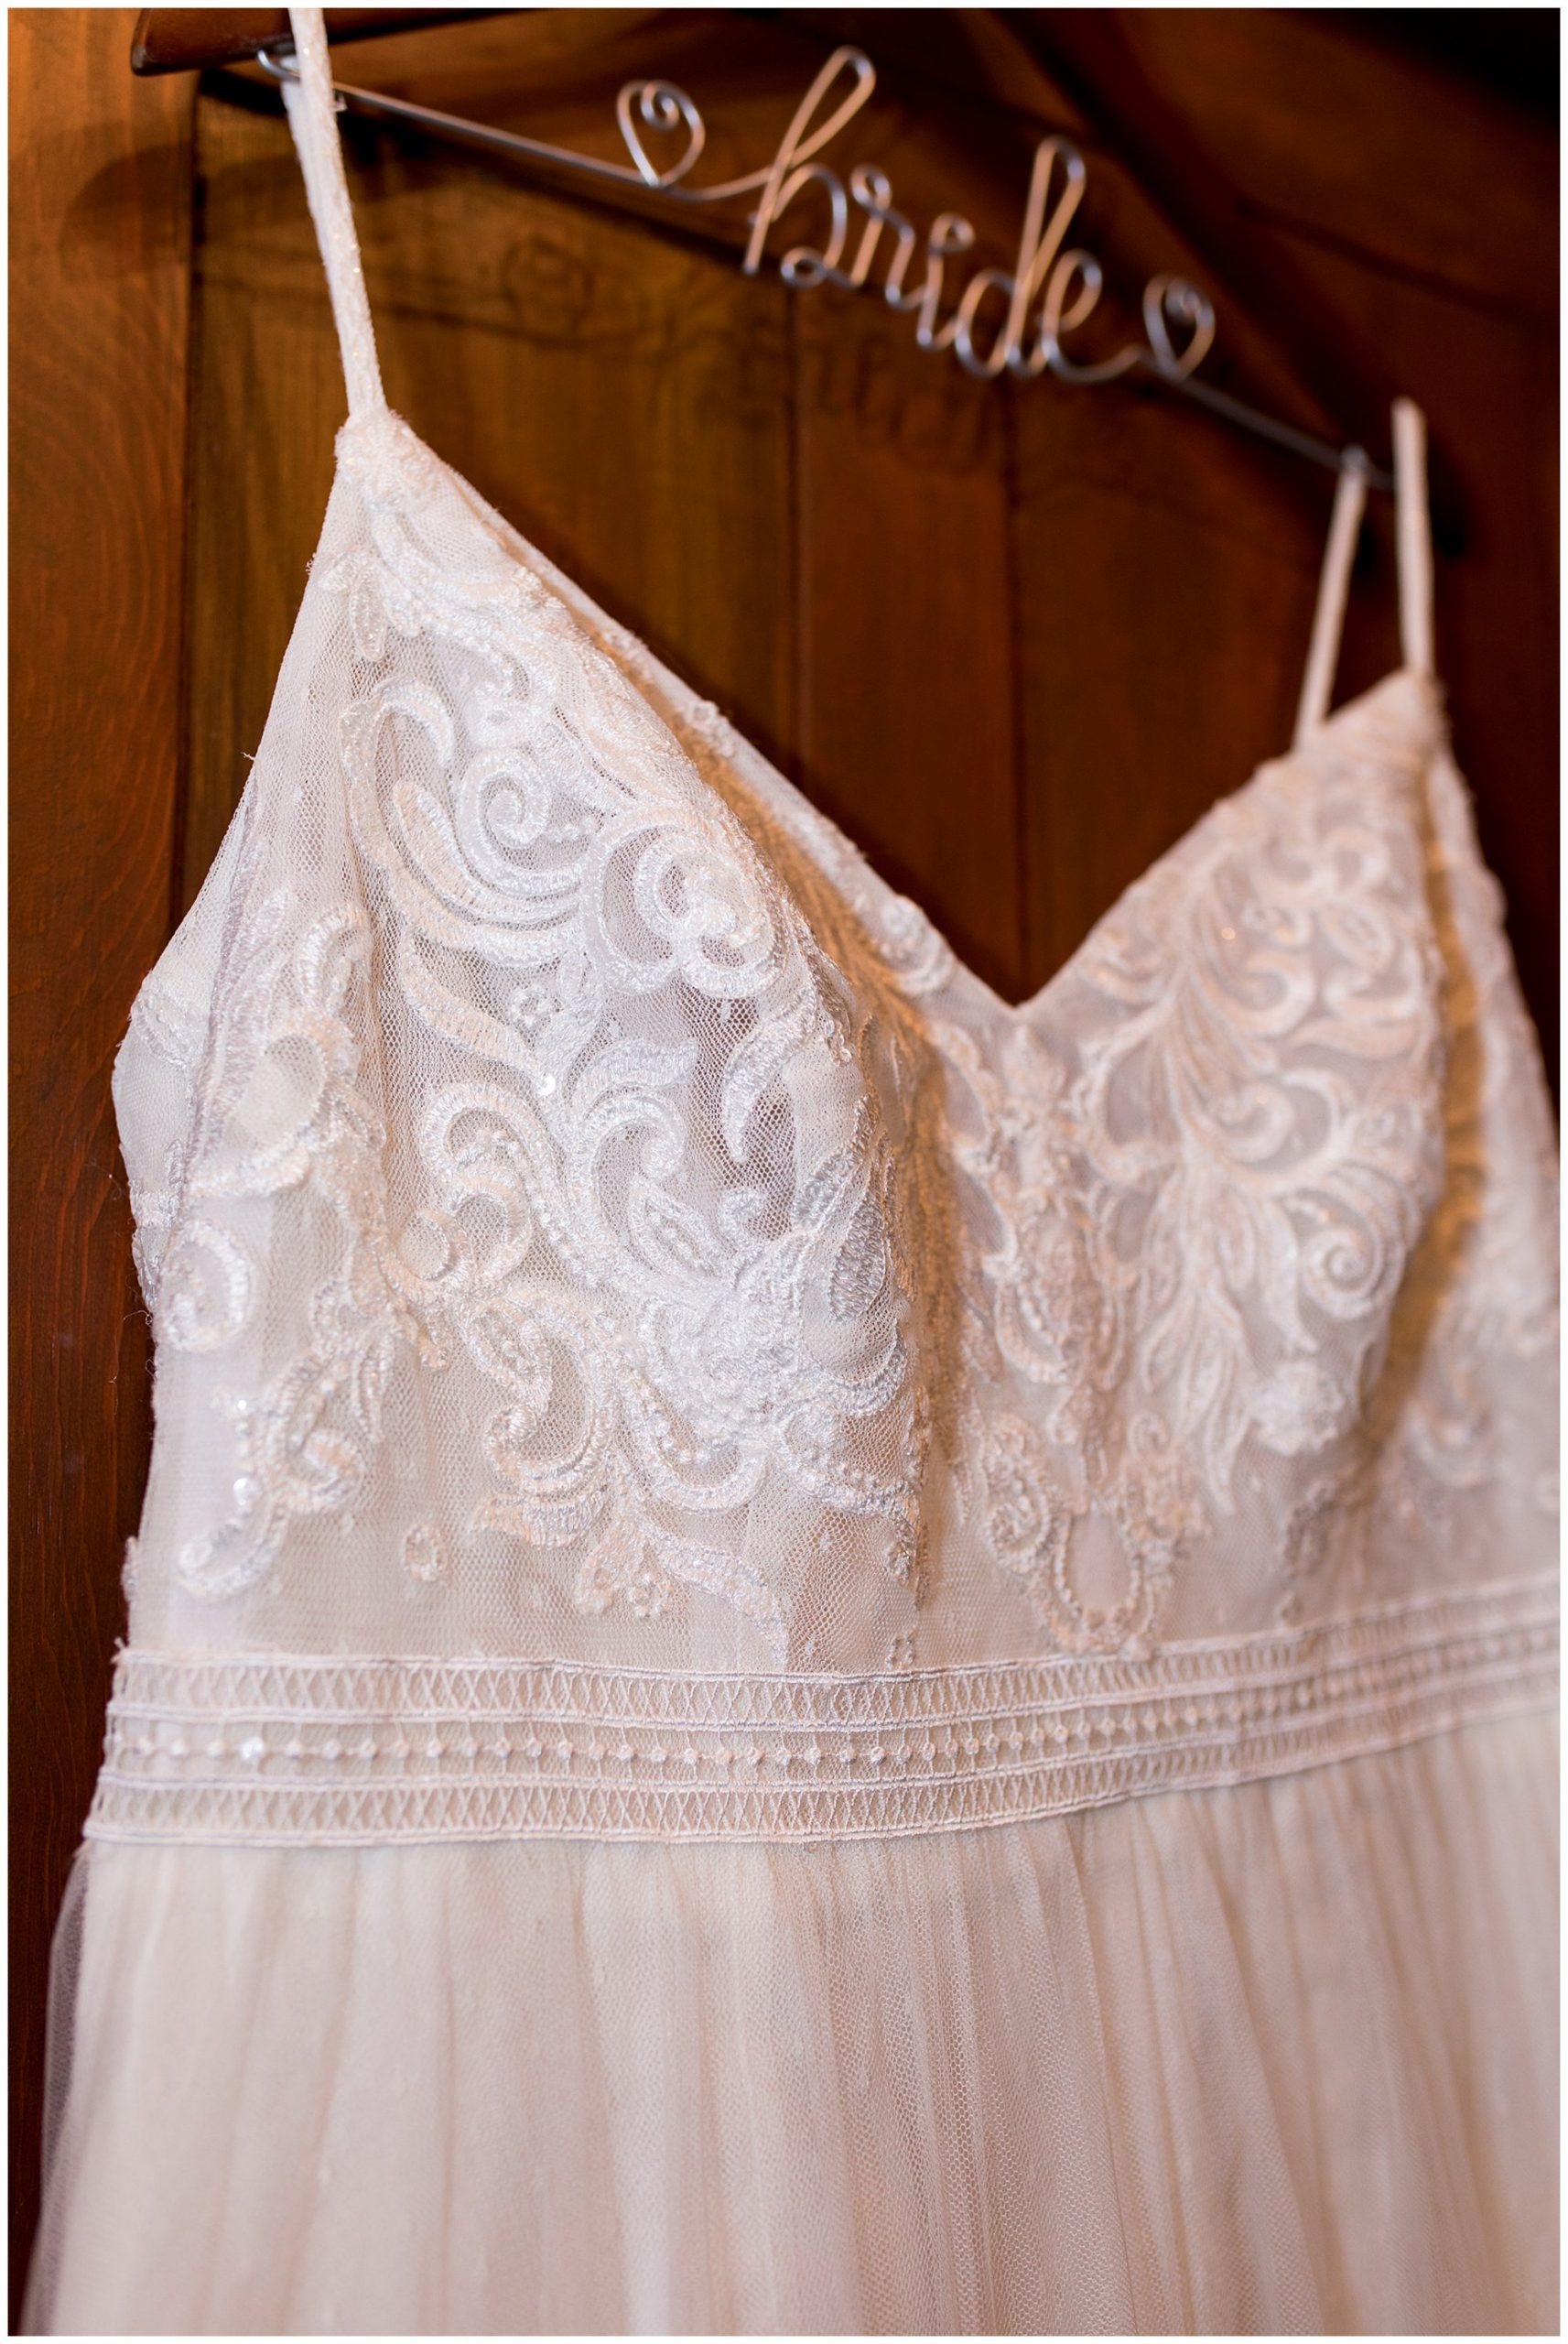 bride's dress before wedding at The Old Mill Village